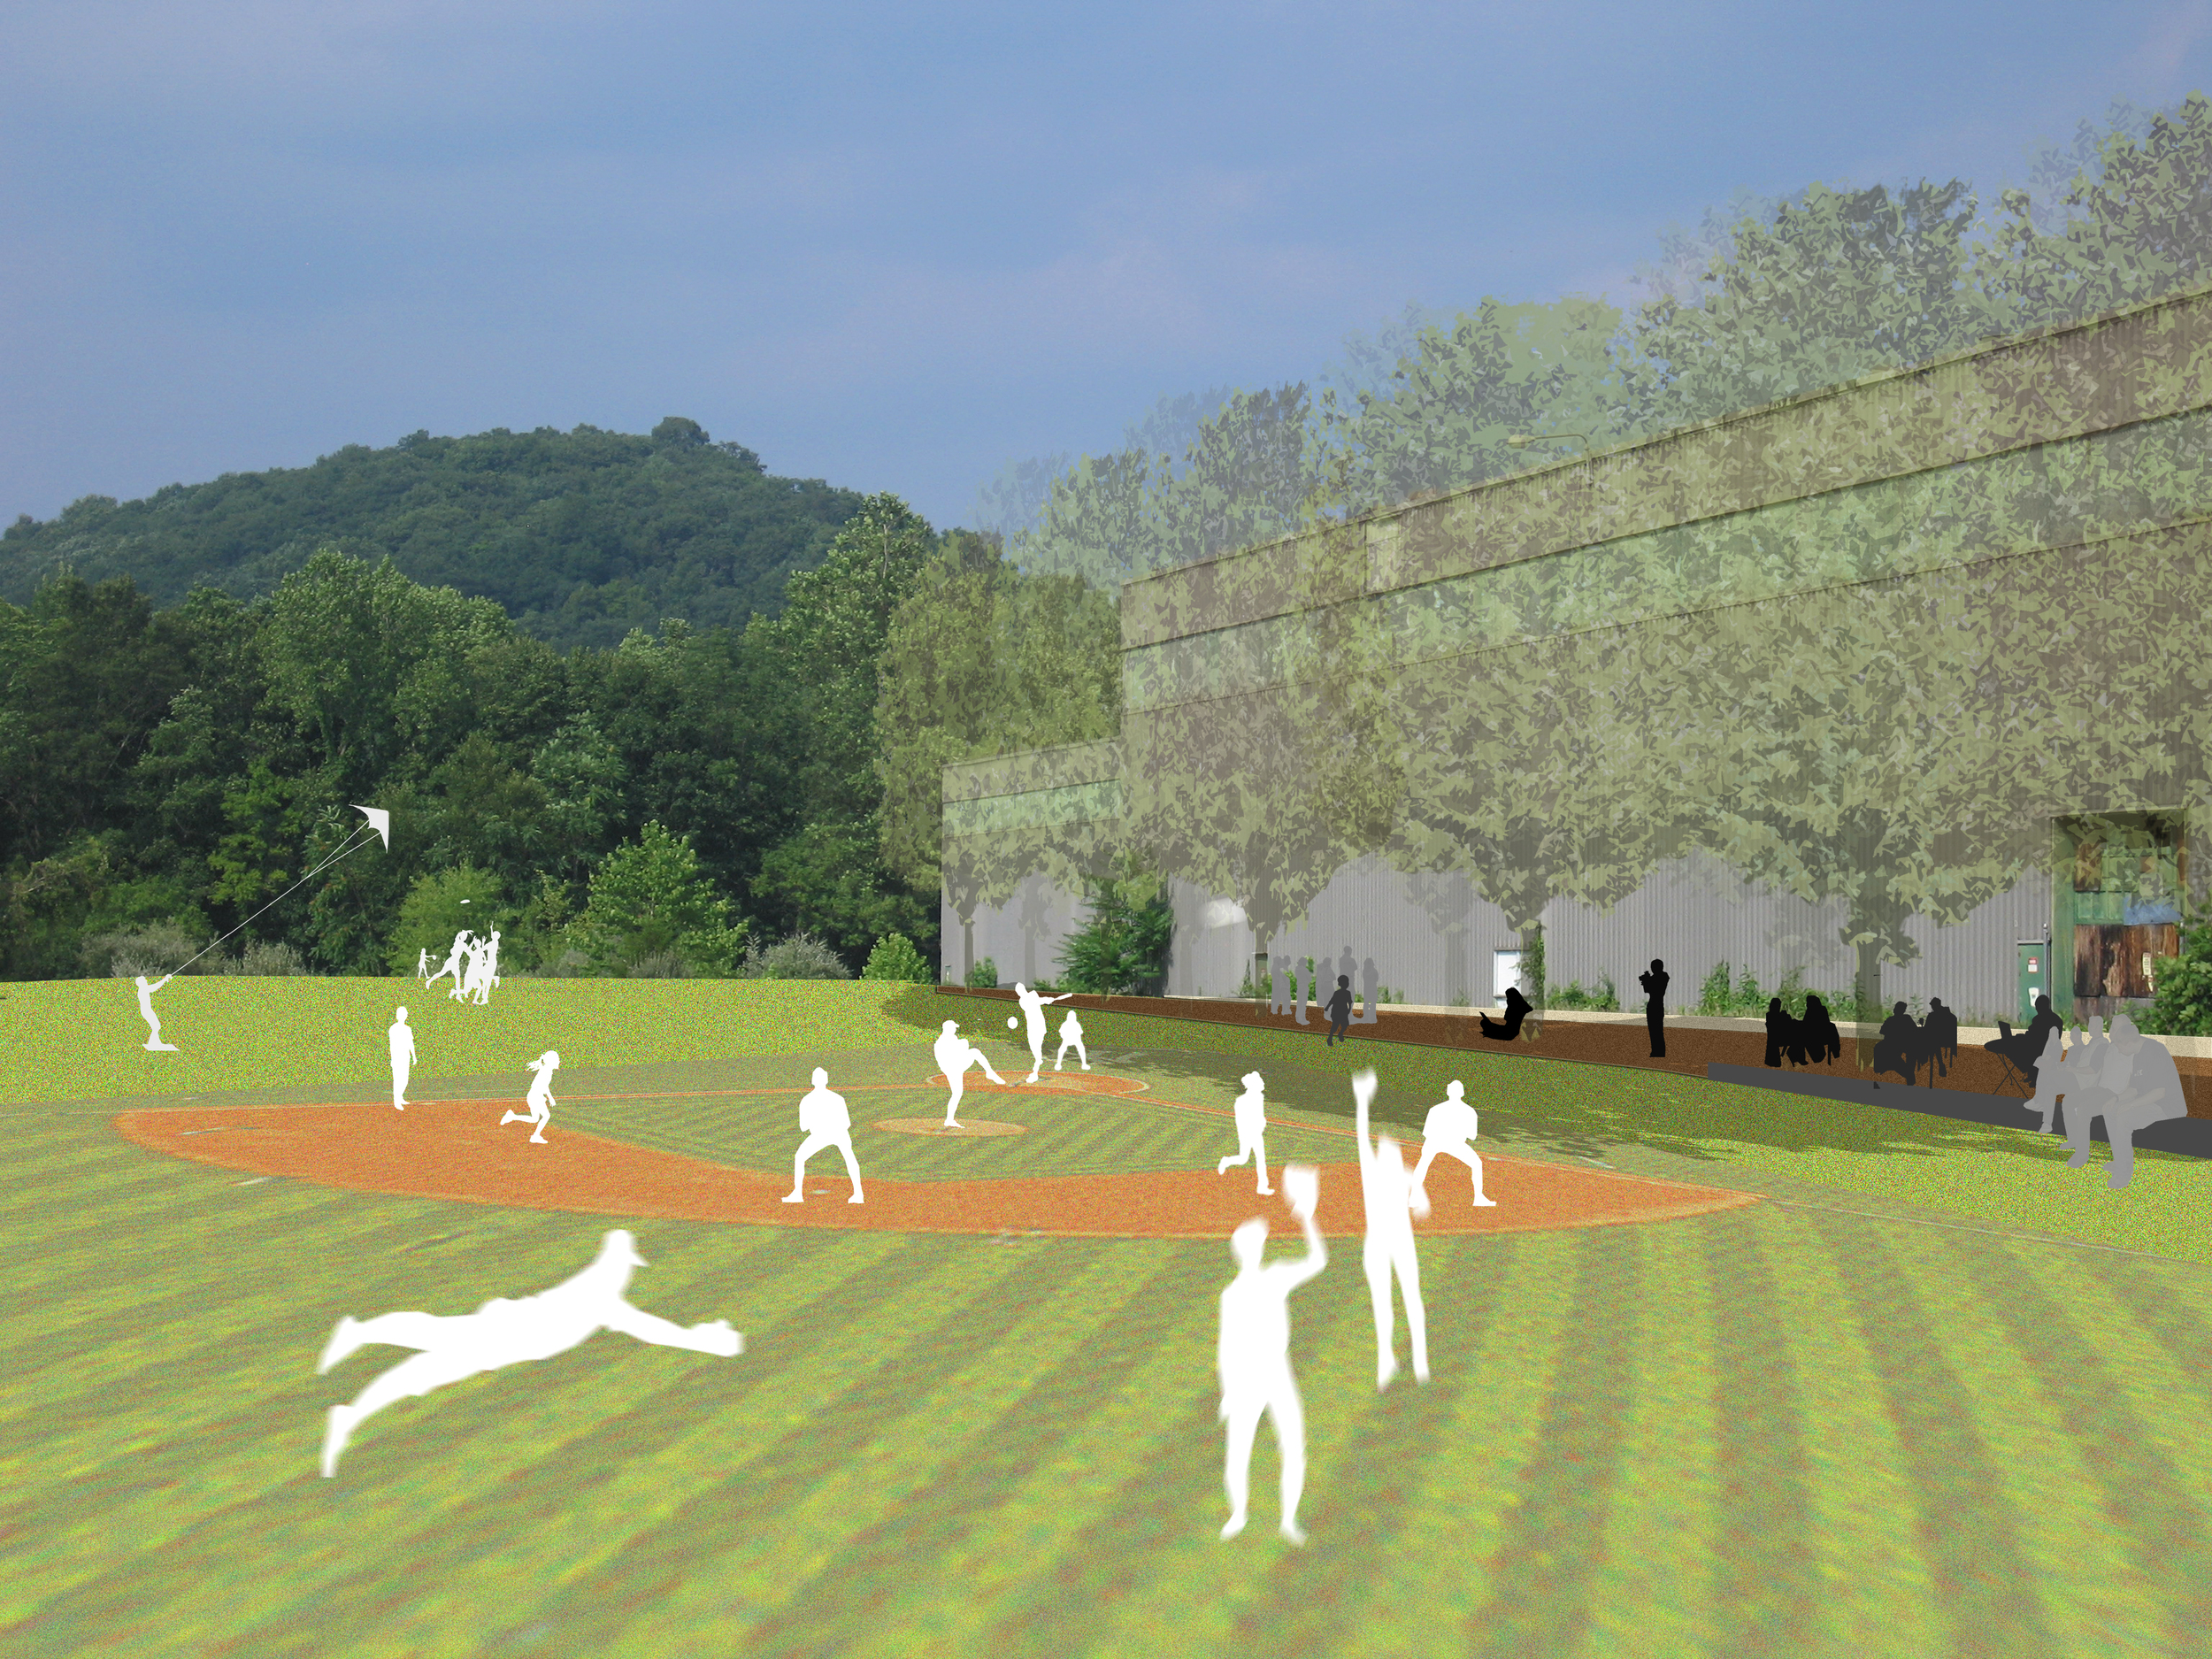 BA_Housatonic Fields_render_sports field.jpg